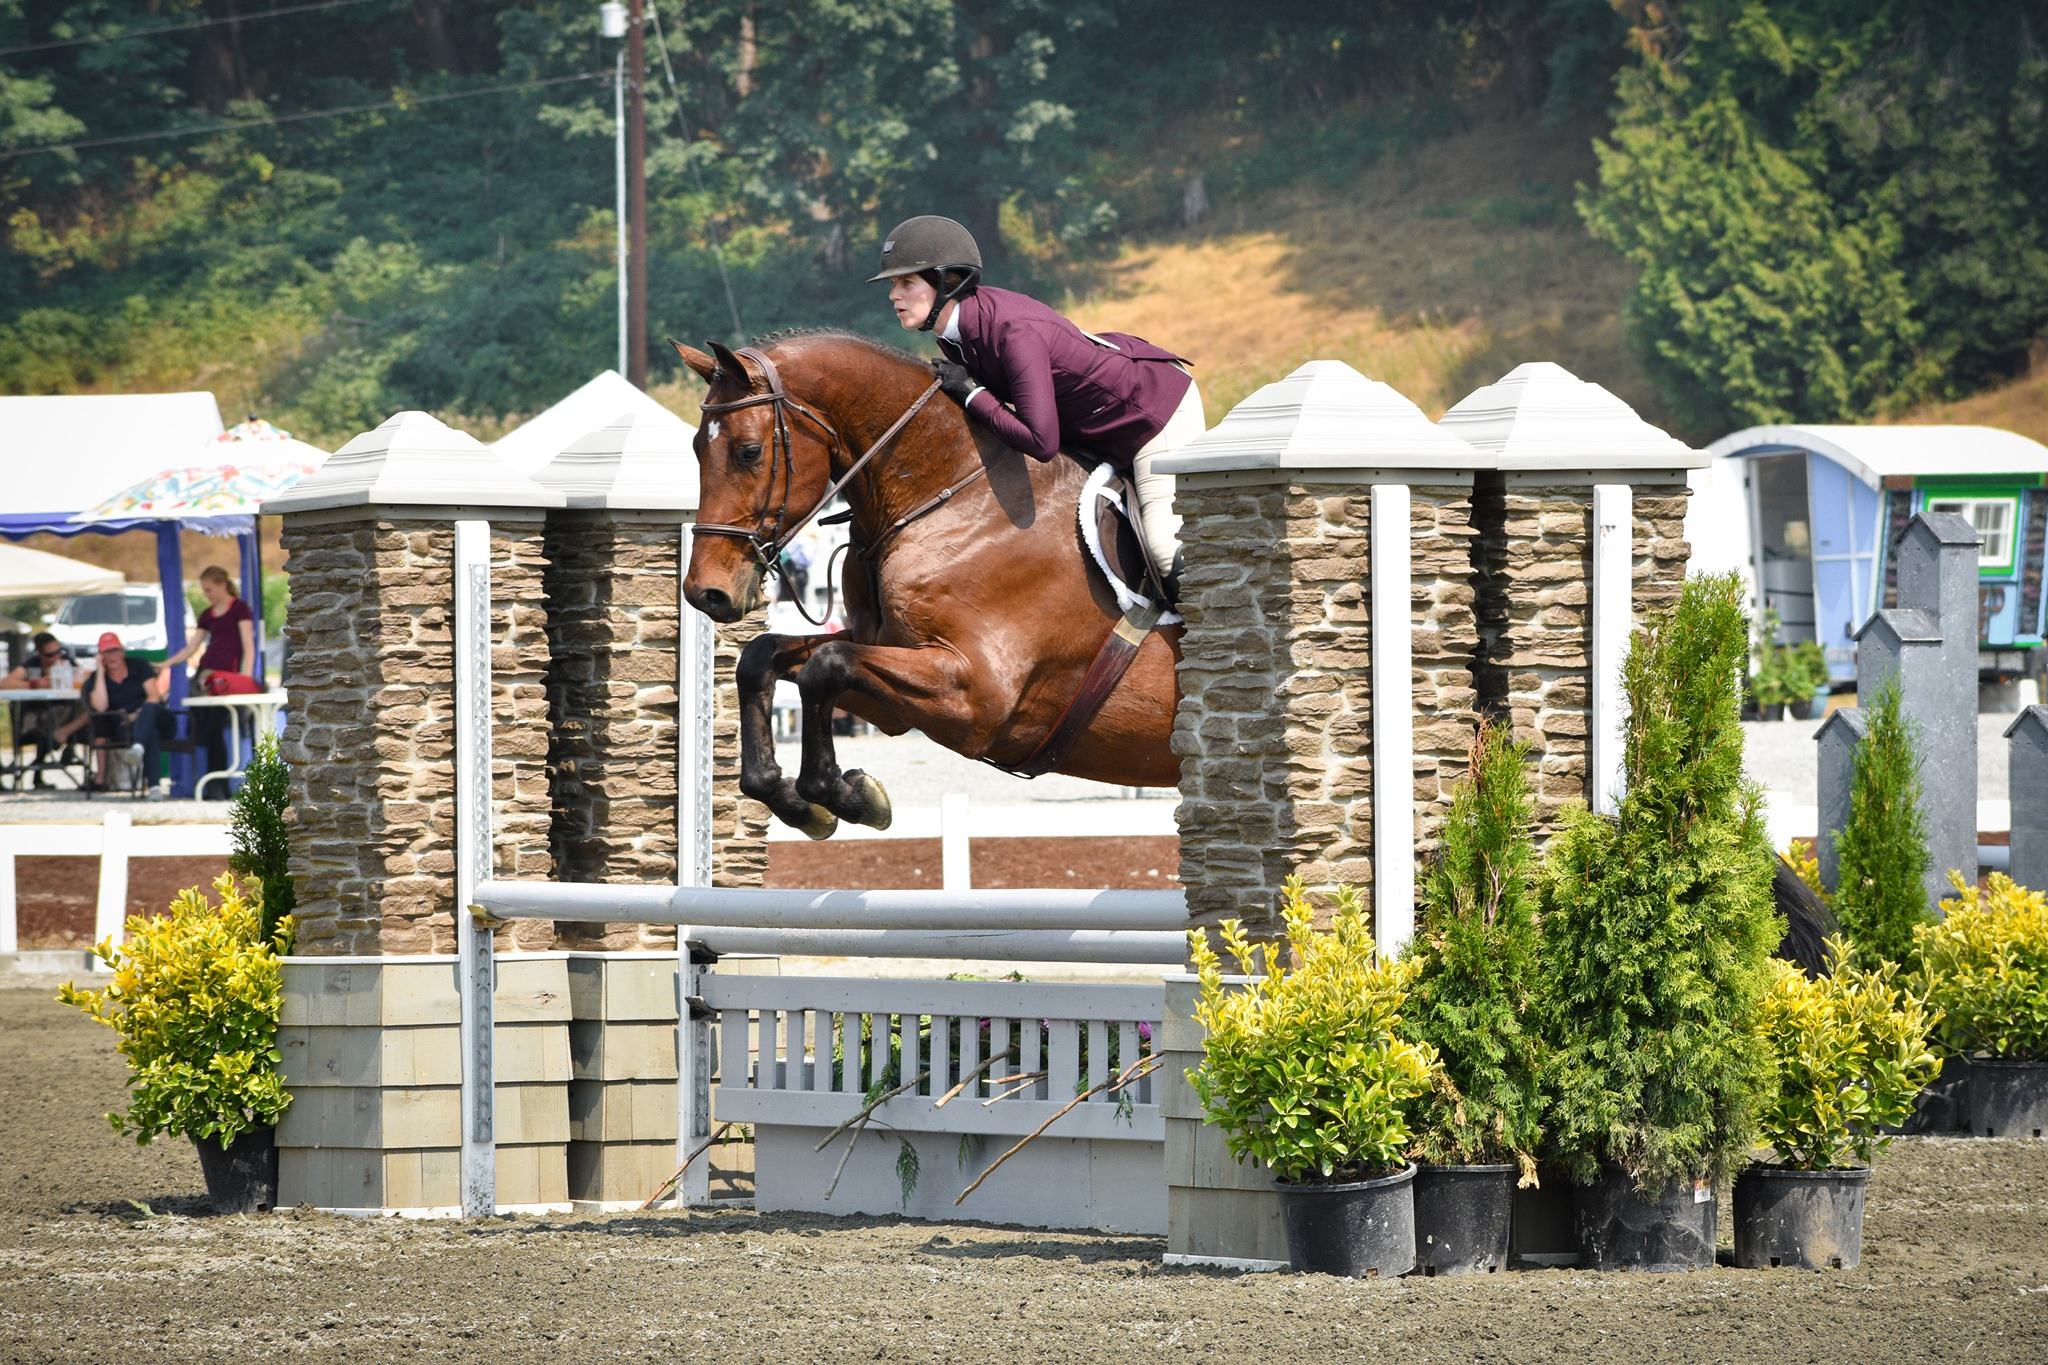 - We take pride in the methodical and correct training of young/green horses. Our program emphasizes flatwork and respect on the ground because we believe they provide the foundation for every horse to realize its potential.